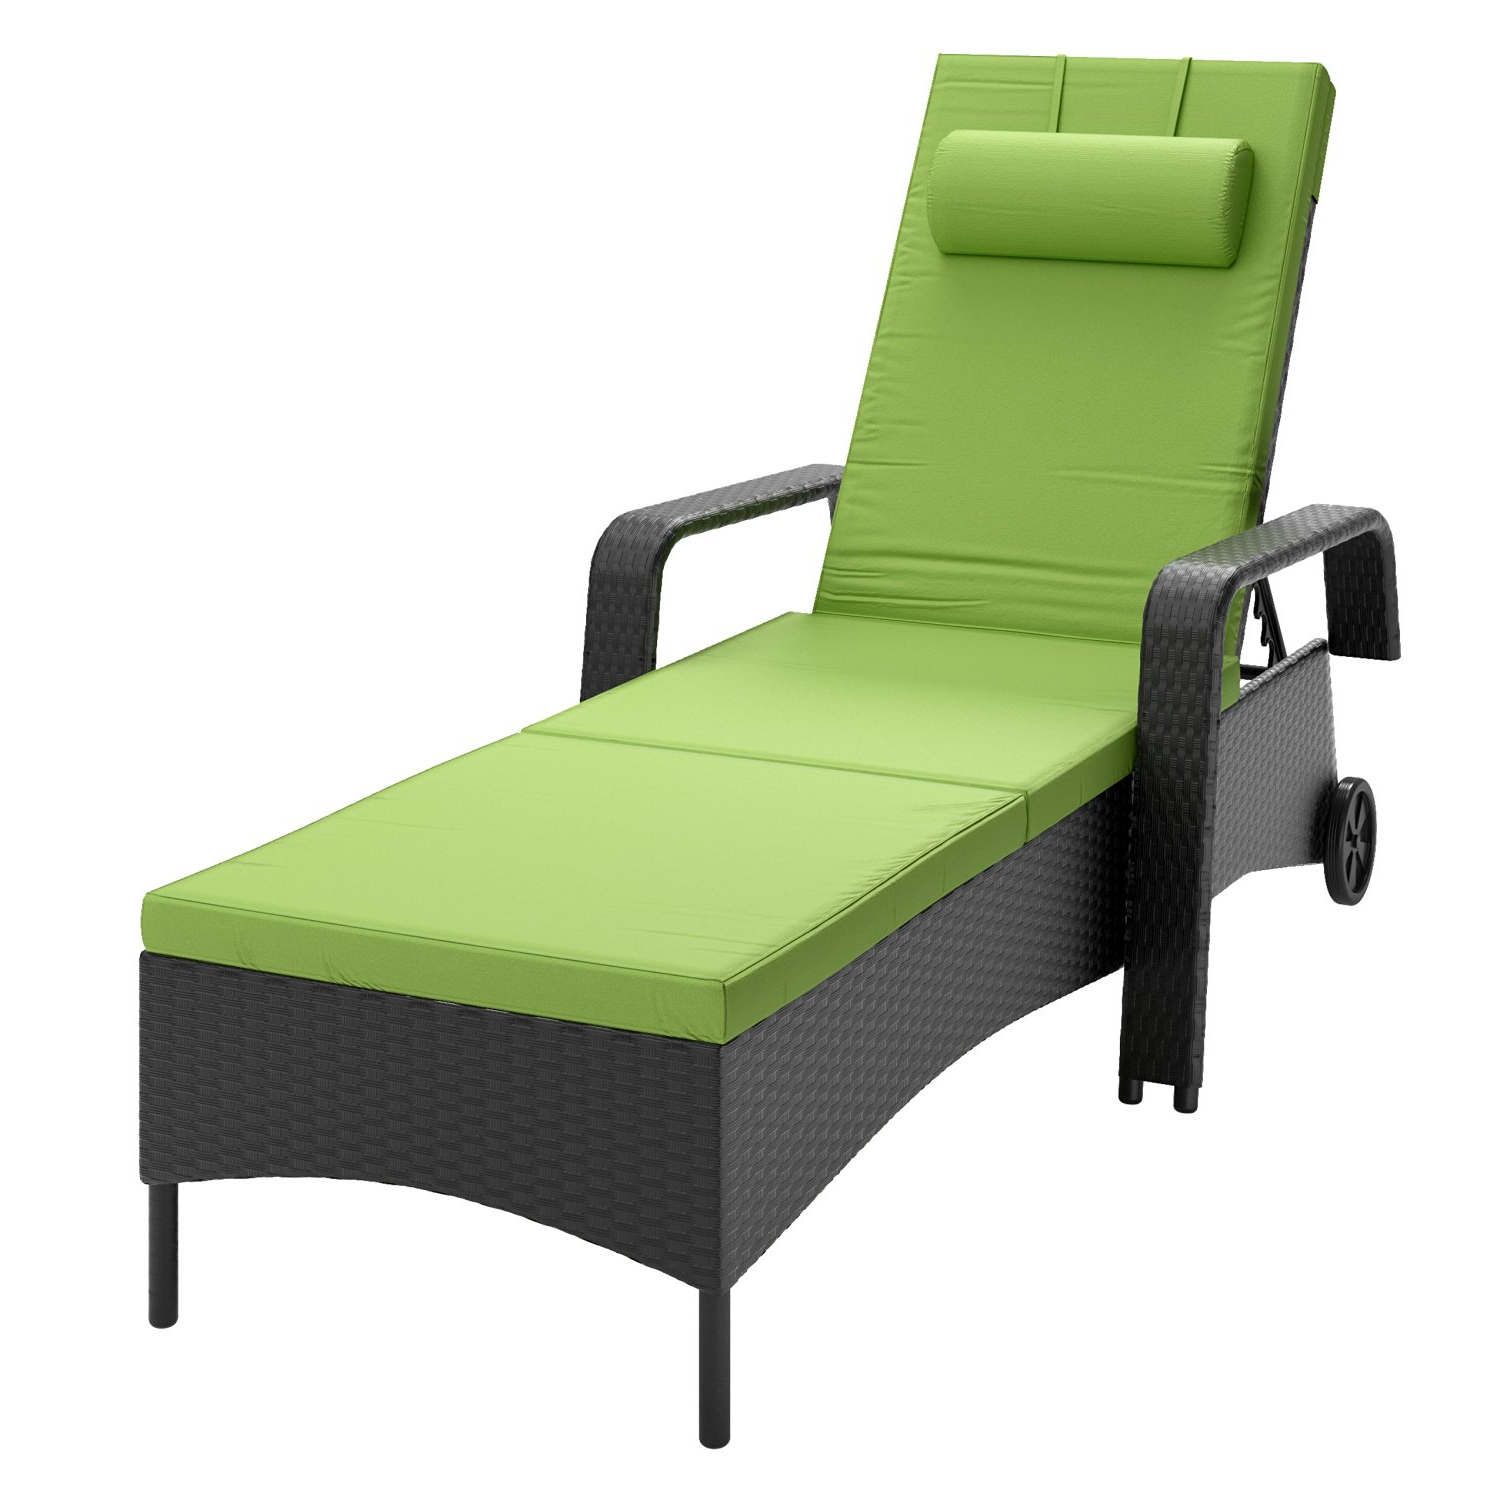 Current Buy Corliving Prs 830 R Riverside Patio Reclining Lounger Pertaining To Corliving Riverside Textured Loungers (View 7 of 25)